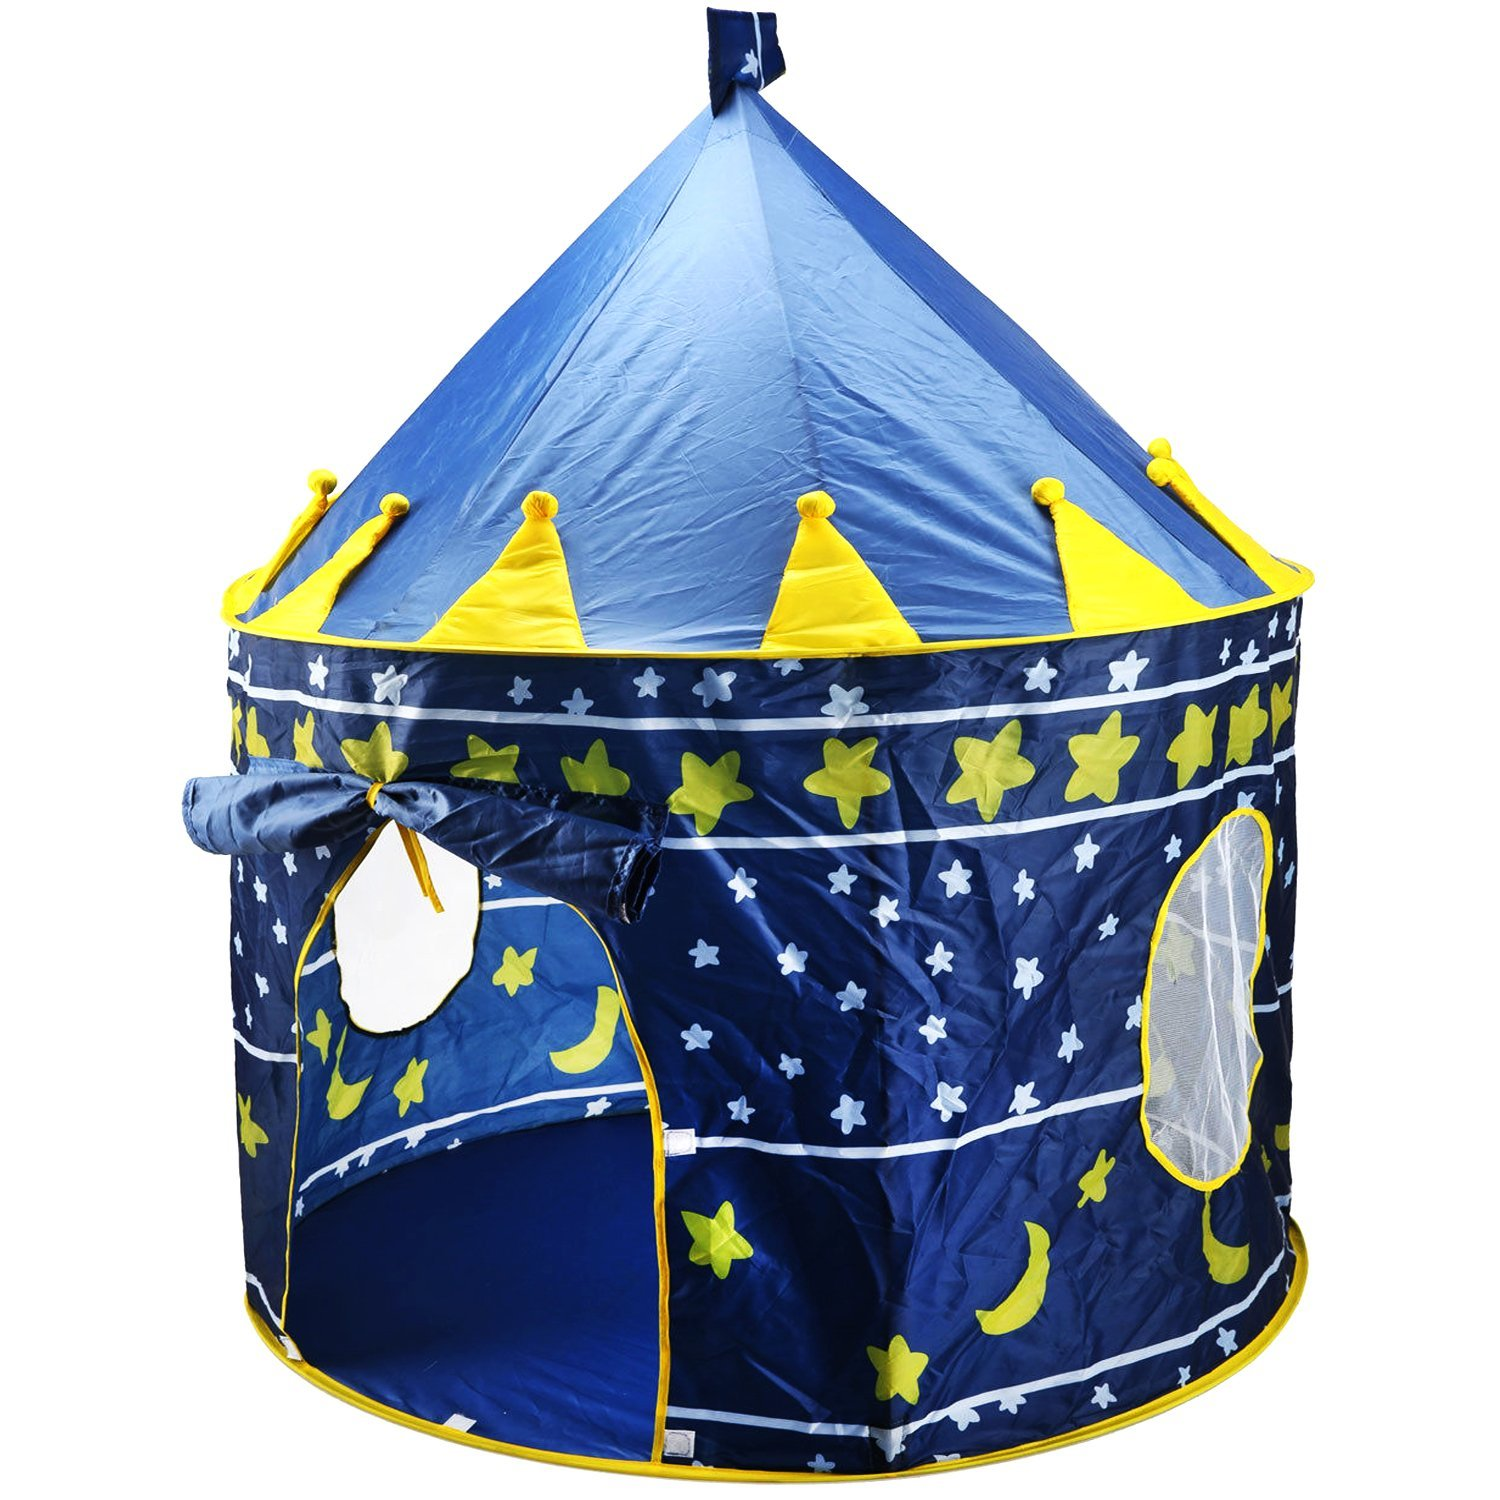 Children Play Tent Boys Girls Prince House Indoor Outdoor Blue Foldable Tent with Case by Creatov  sc 1 st  Walmart : childrens play tent - memphite.com